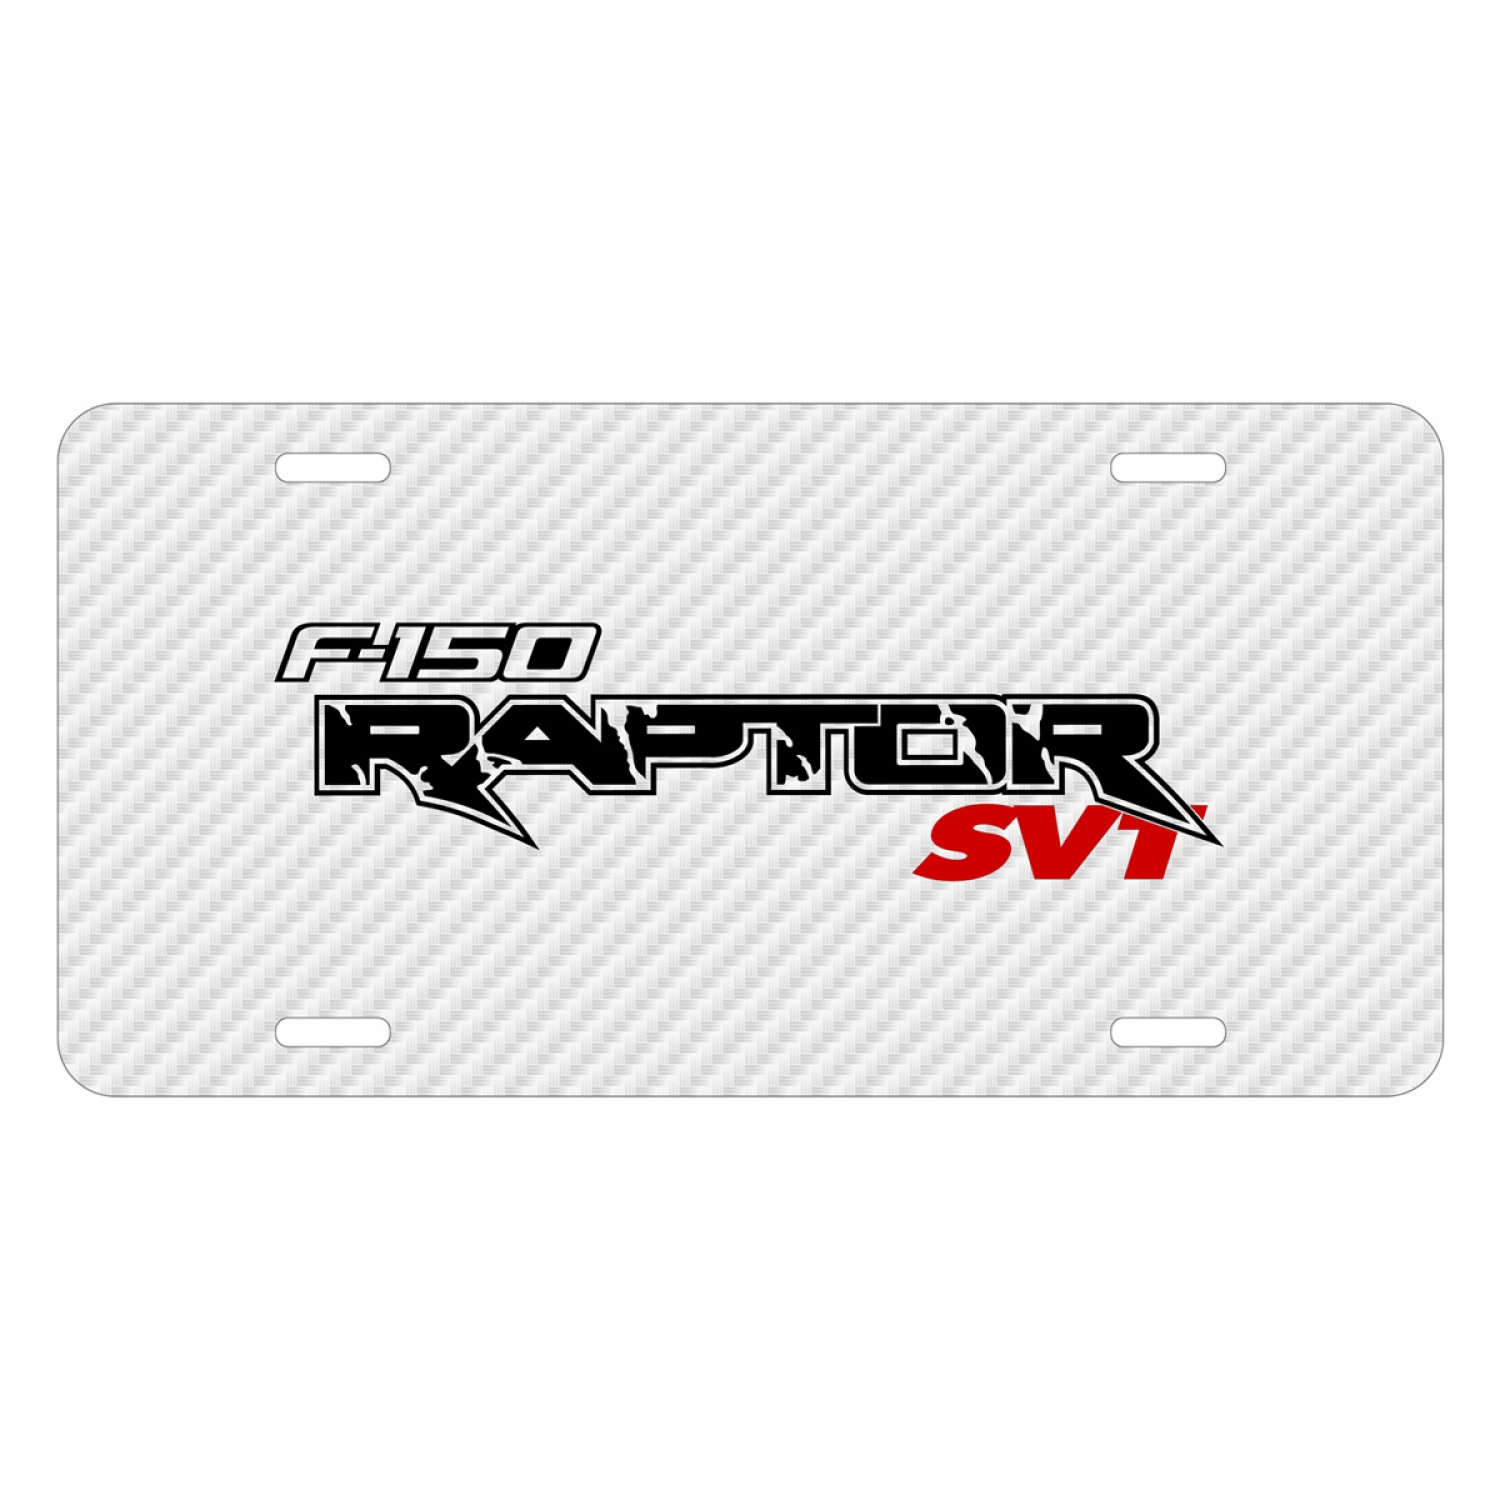 Ford F-150 Raptor SVT 2010 to 2014 White Carbon Fiber Texture Graphic UV Metal License Plate